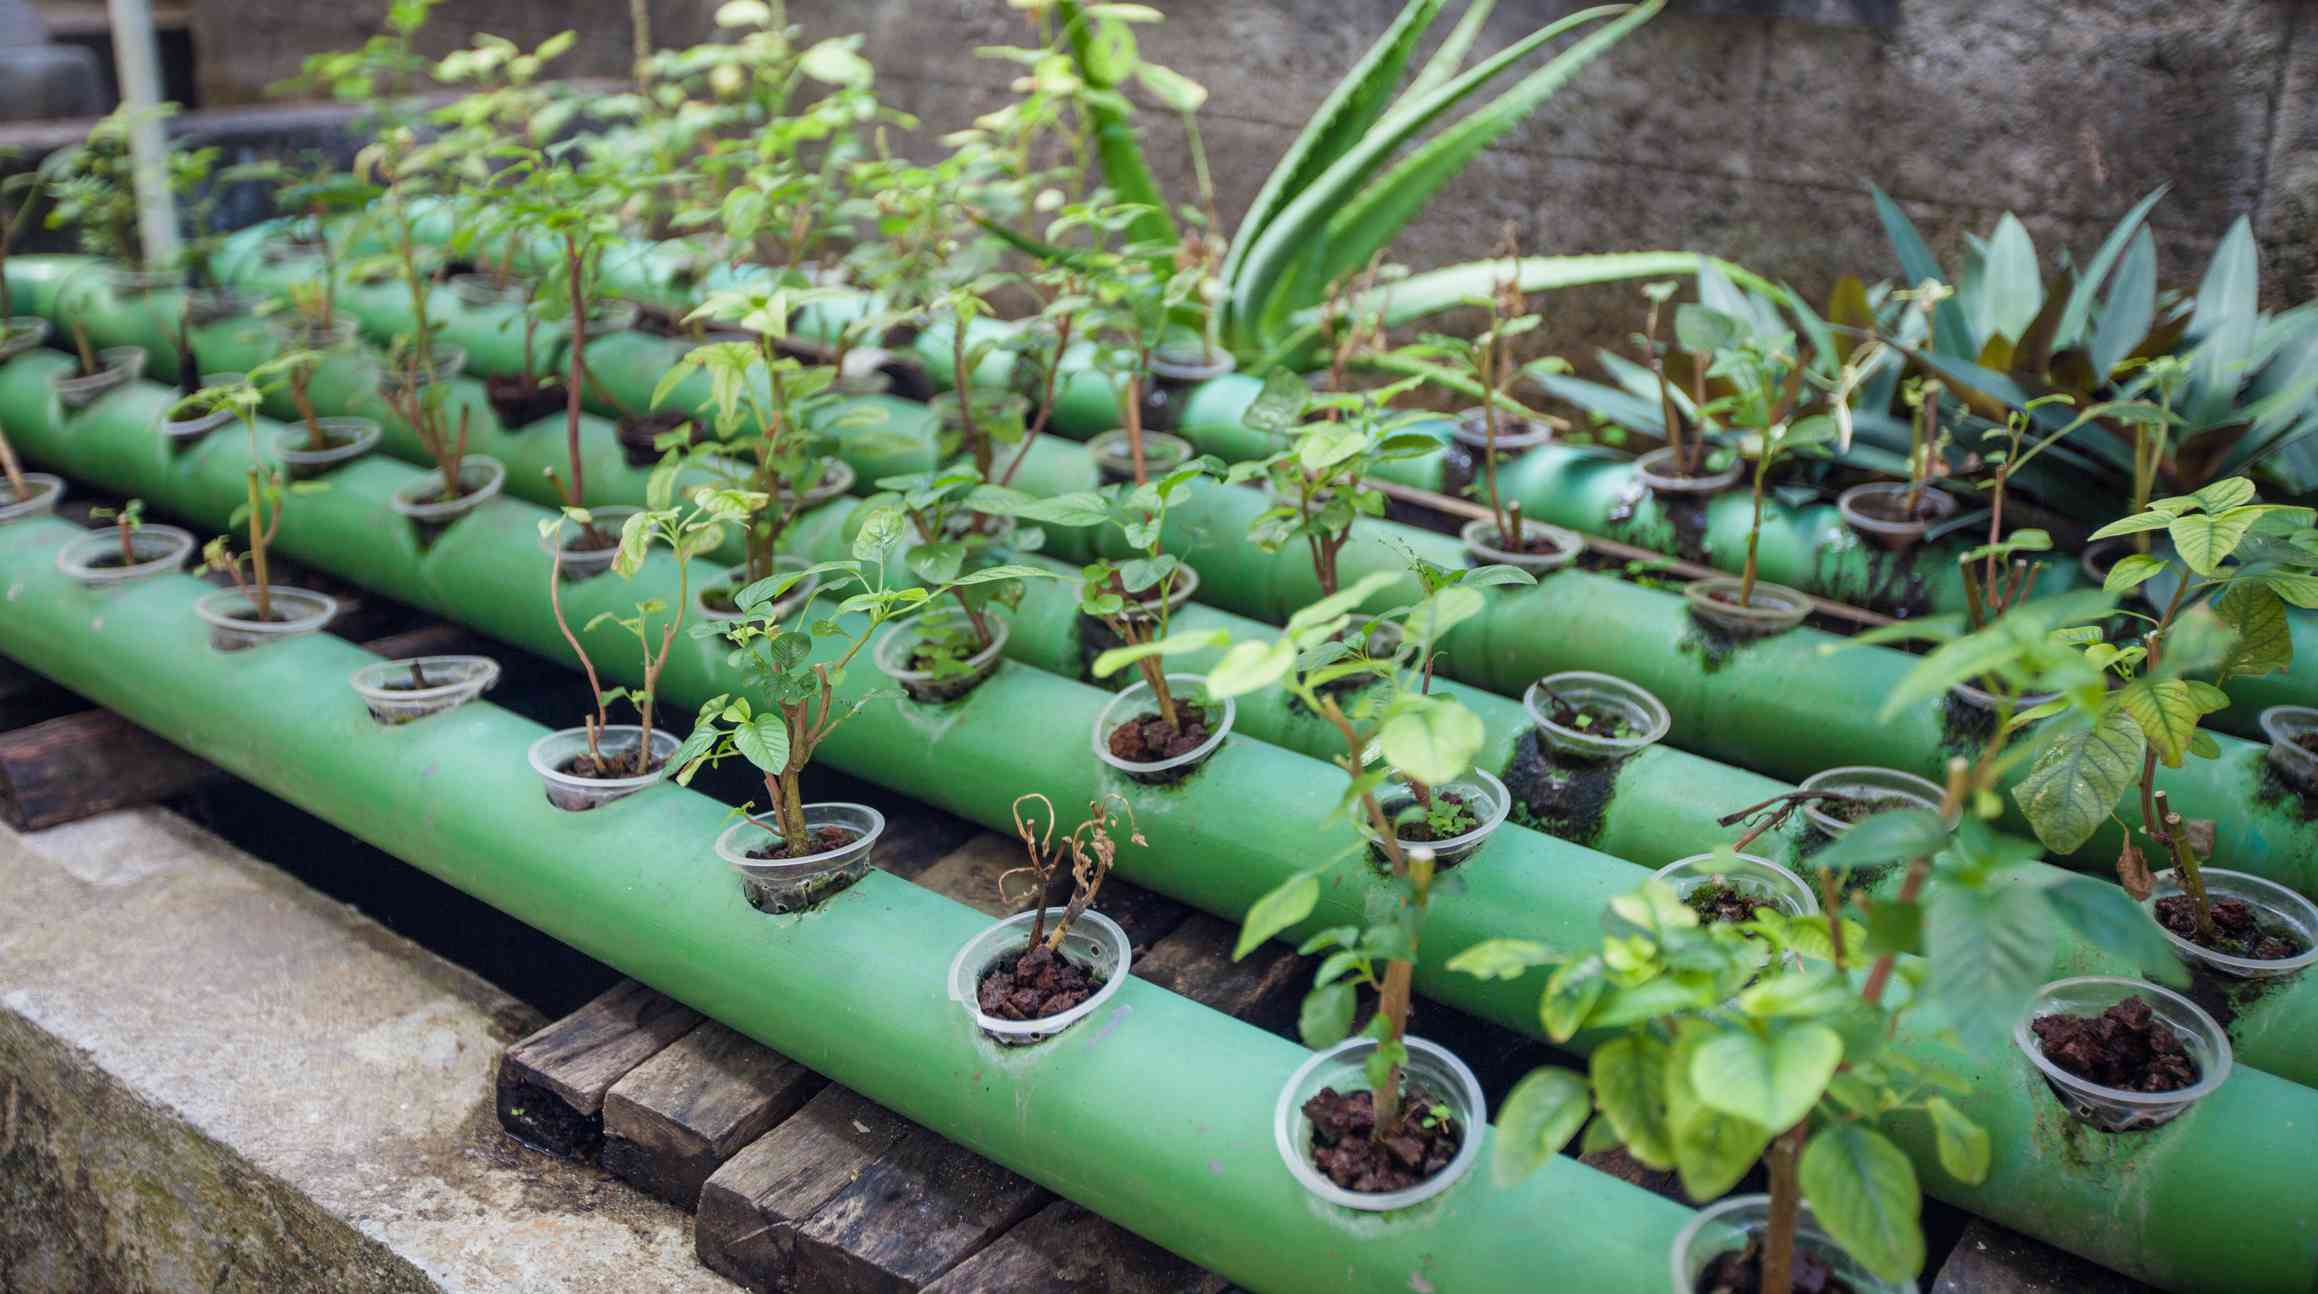 Aquaponics plants growing in pipes